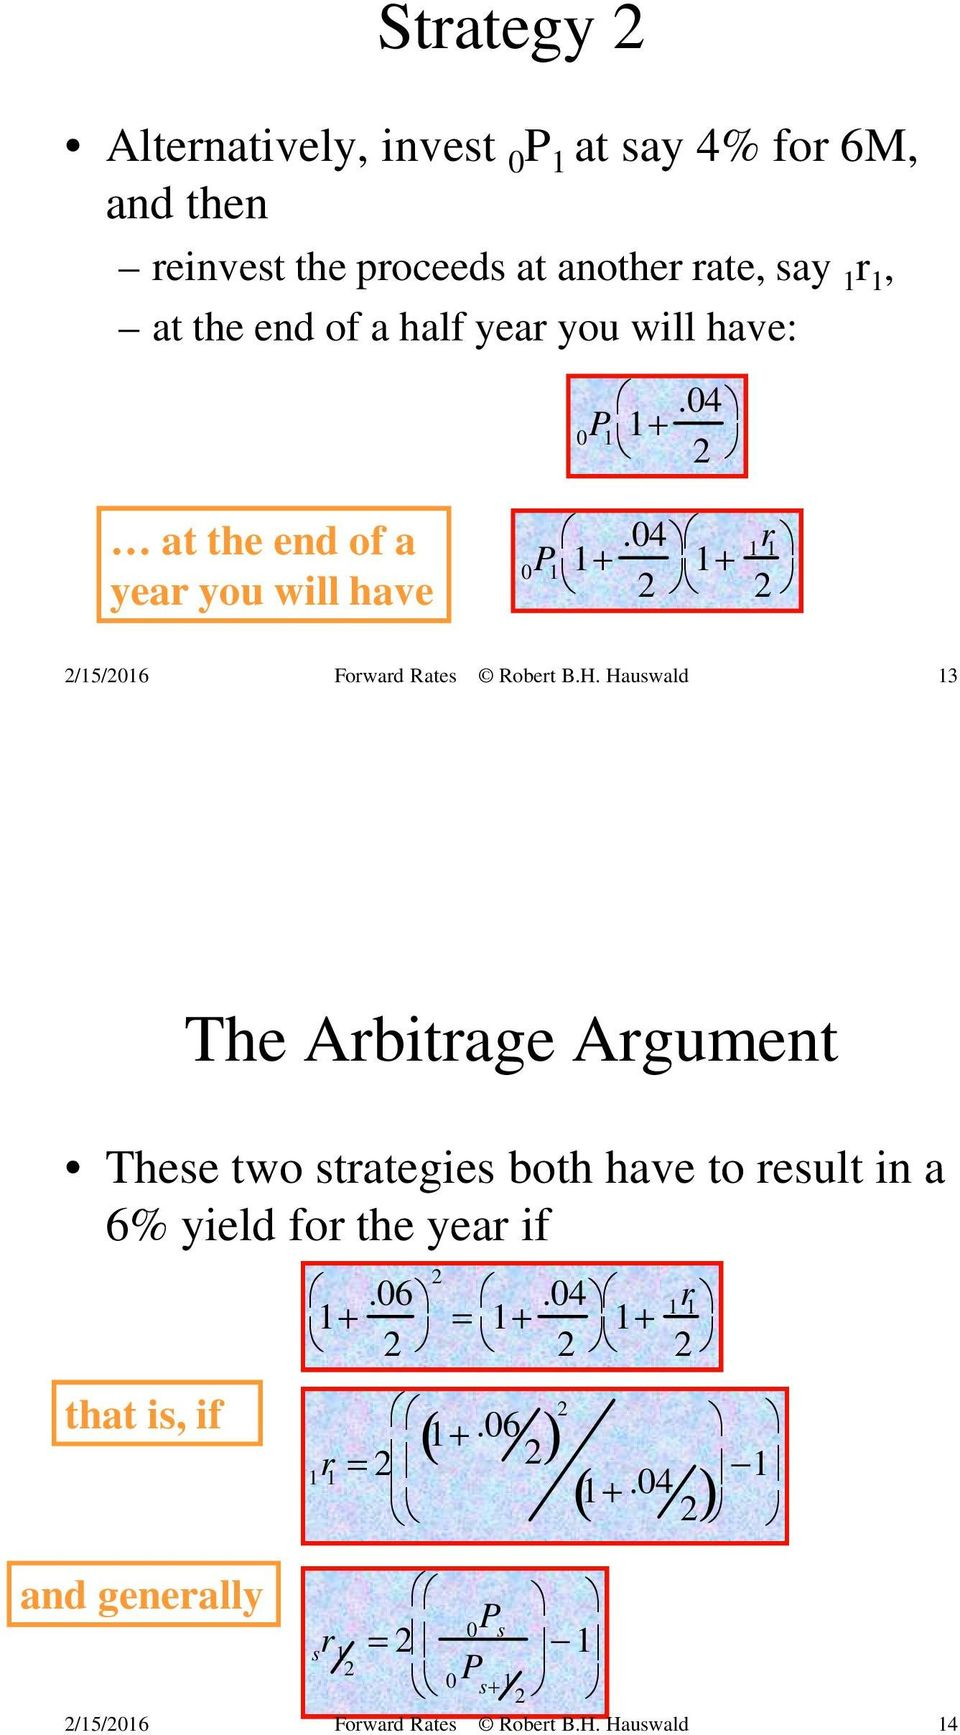 04 2 1+ r 1 1 2 13 The Arbitrage Argument These two strategies both have to result in a 6% yield for the year if